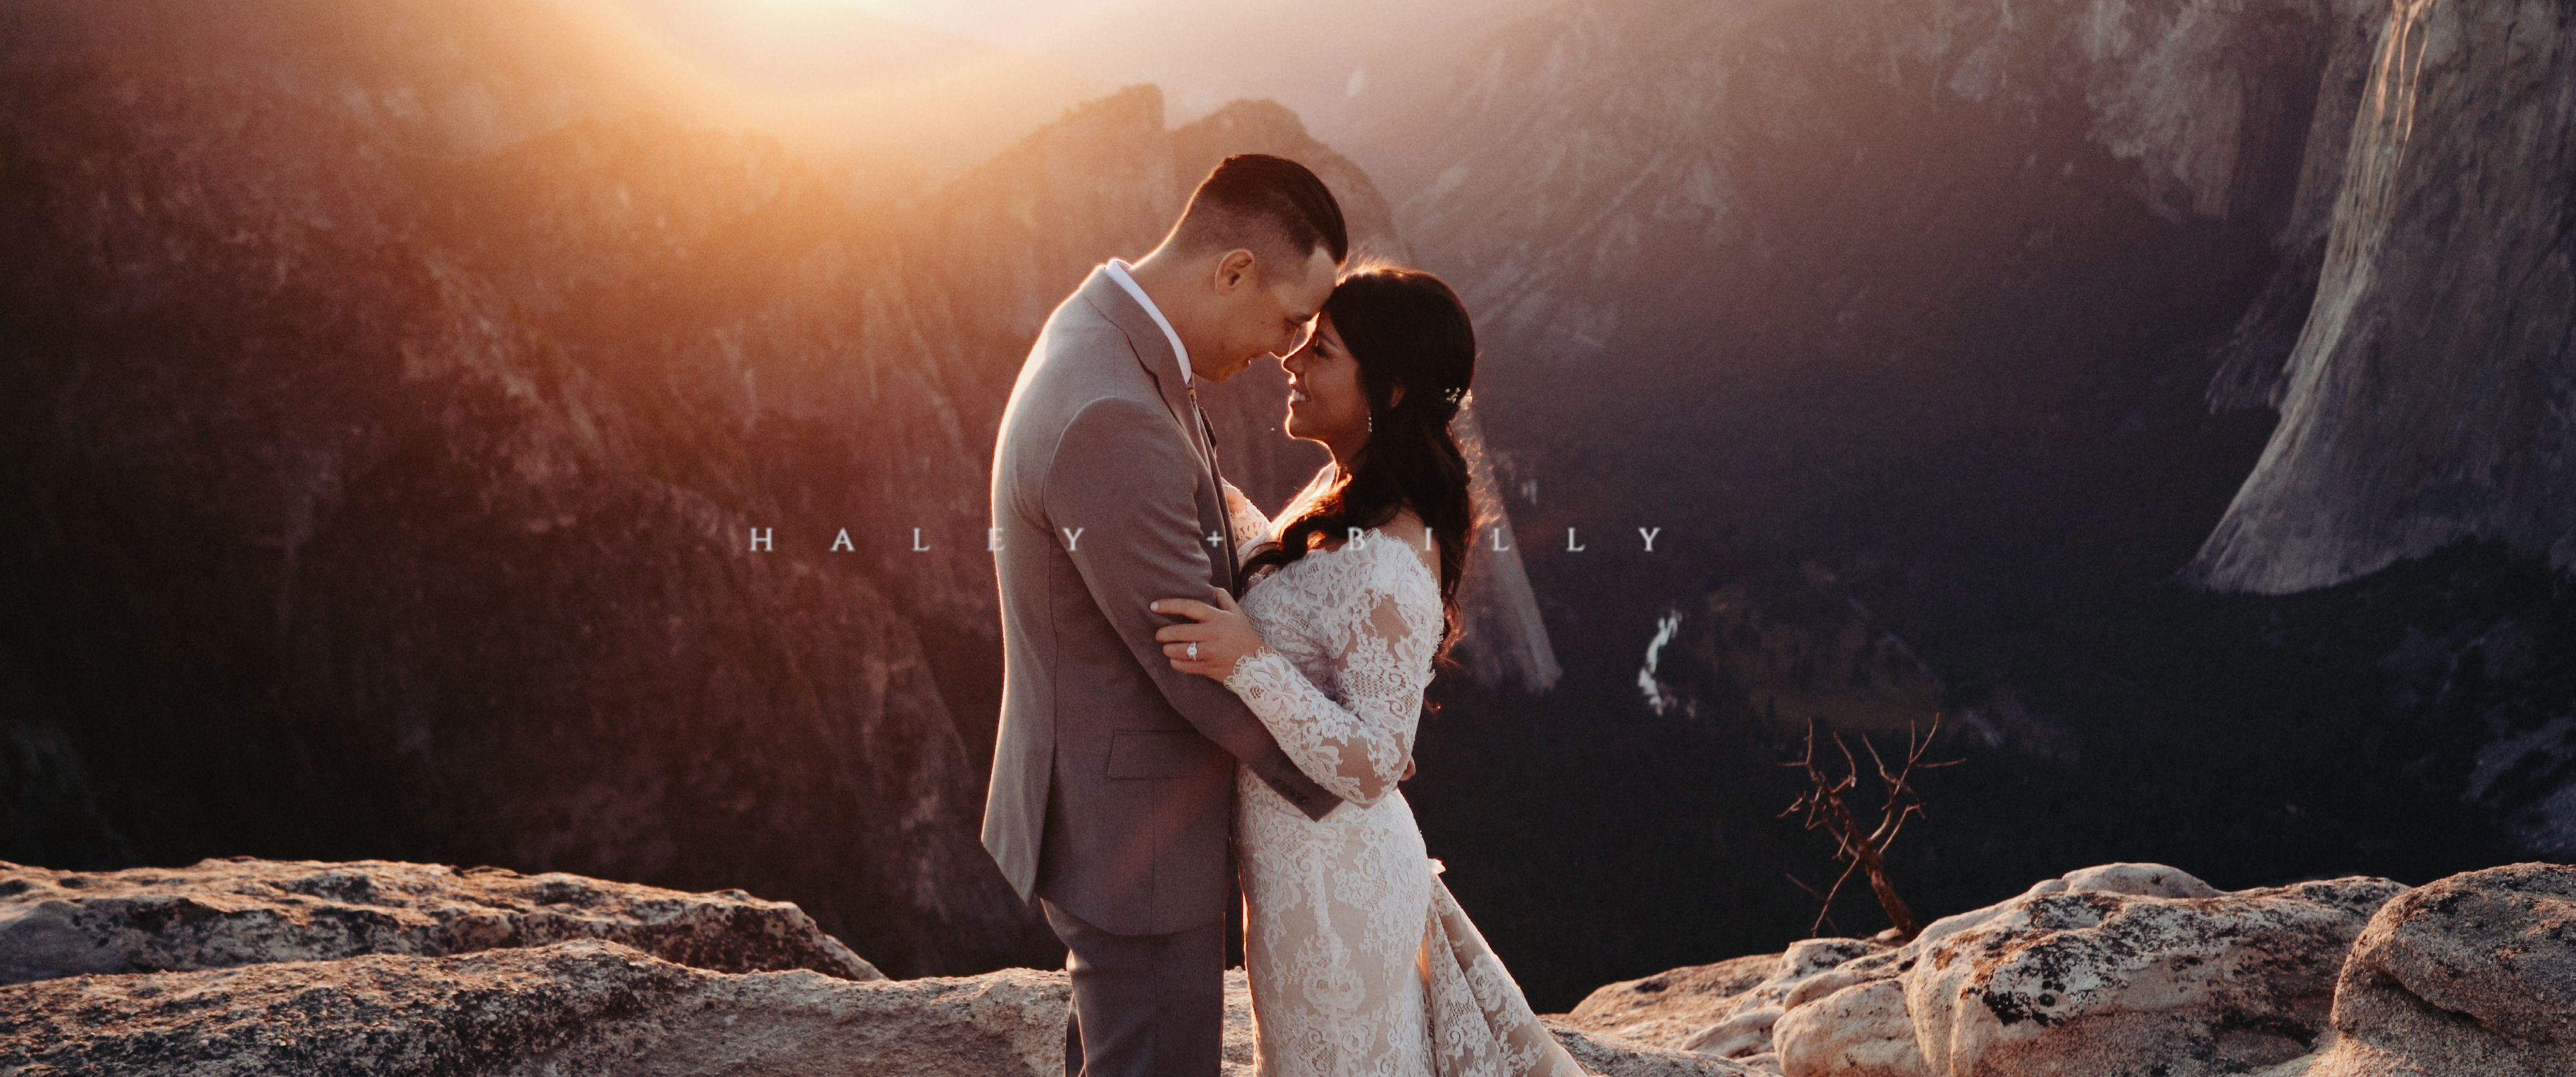 Haley + Billy | California, California | Yosemite National Park